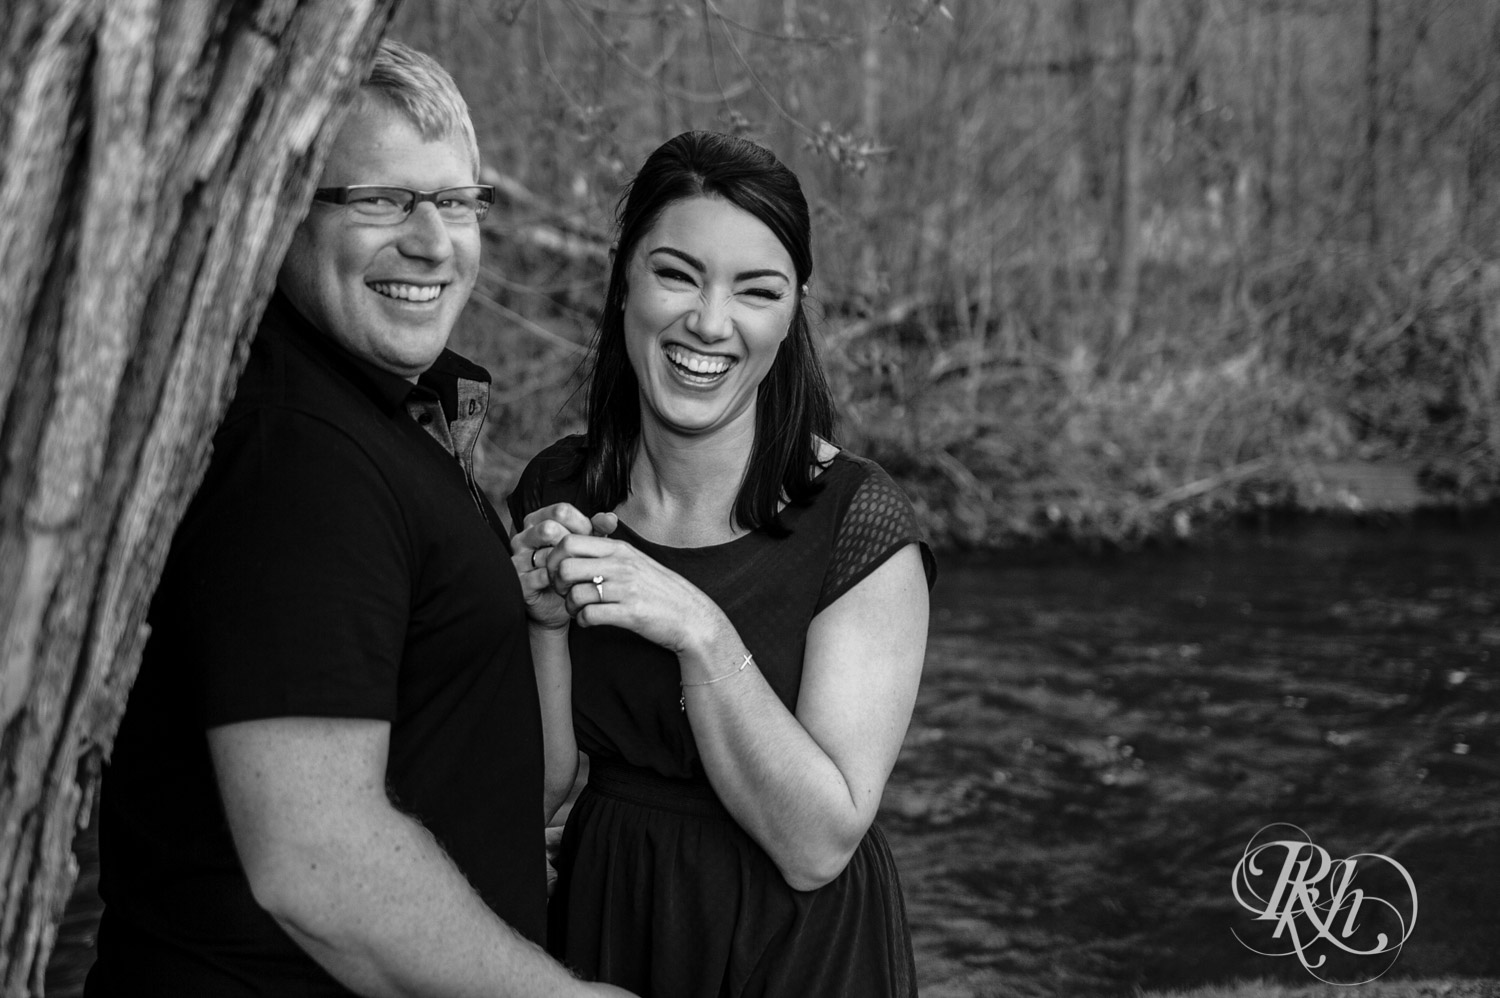 Chelsey & Erik - Minnesota Engagement Photography - Creekside Farm and Events - Rush City - RKH Images  (1 of 18).jpg